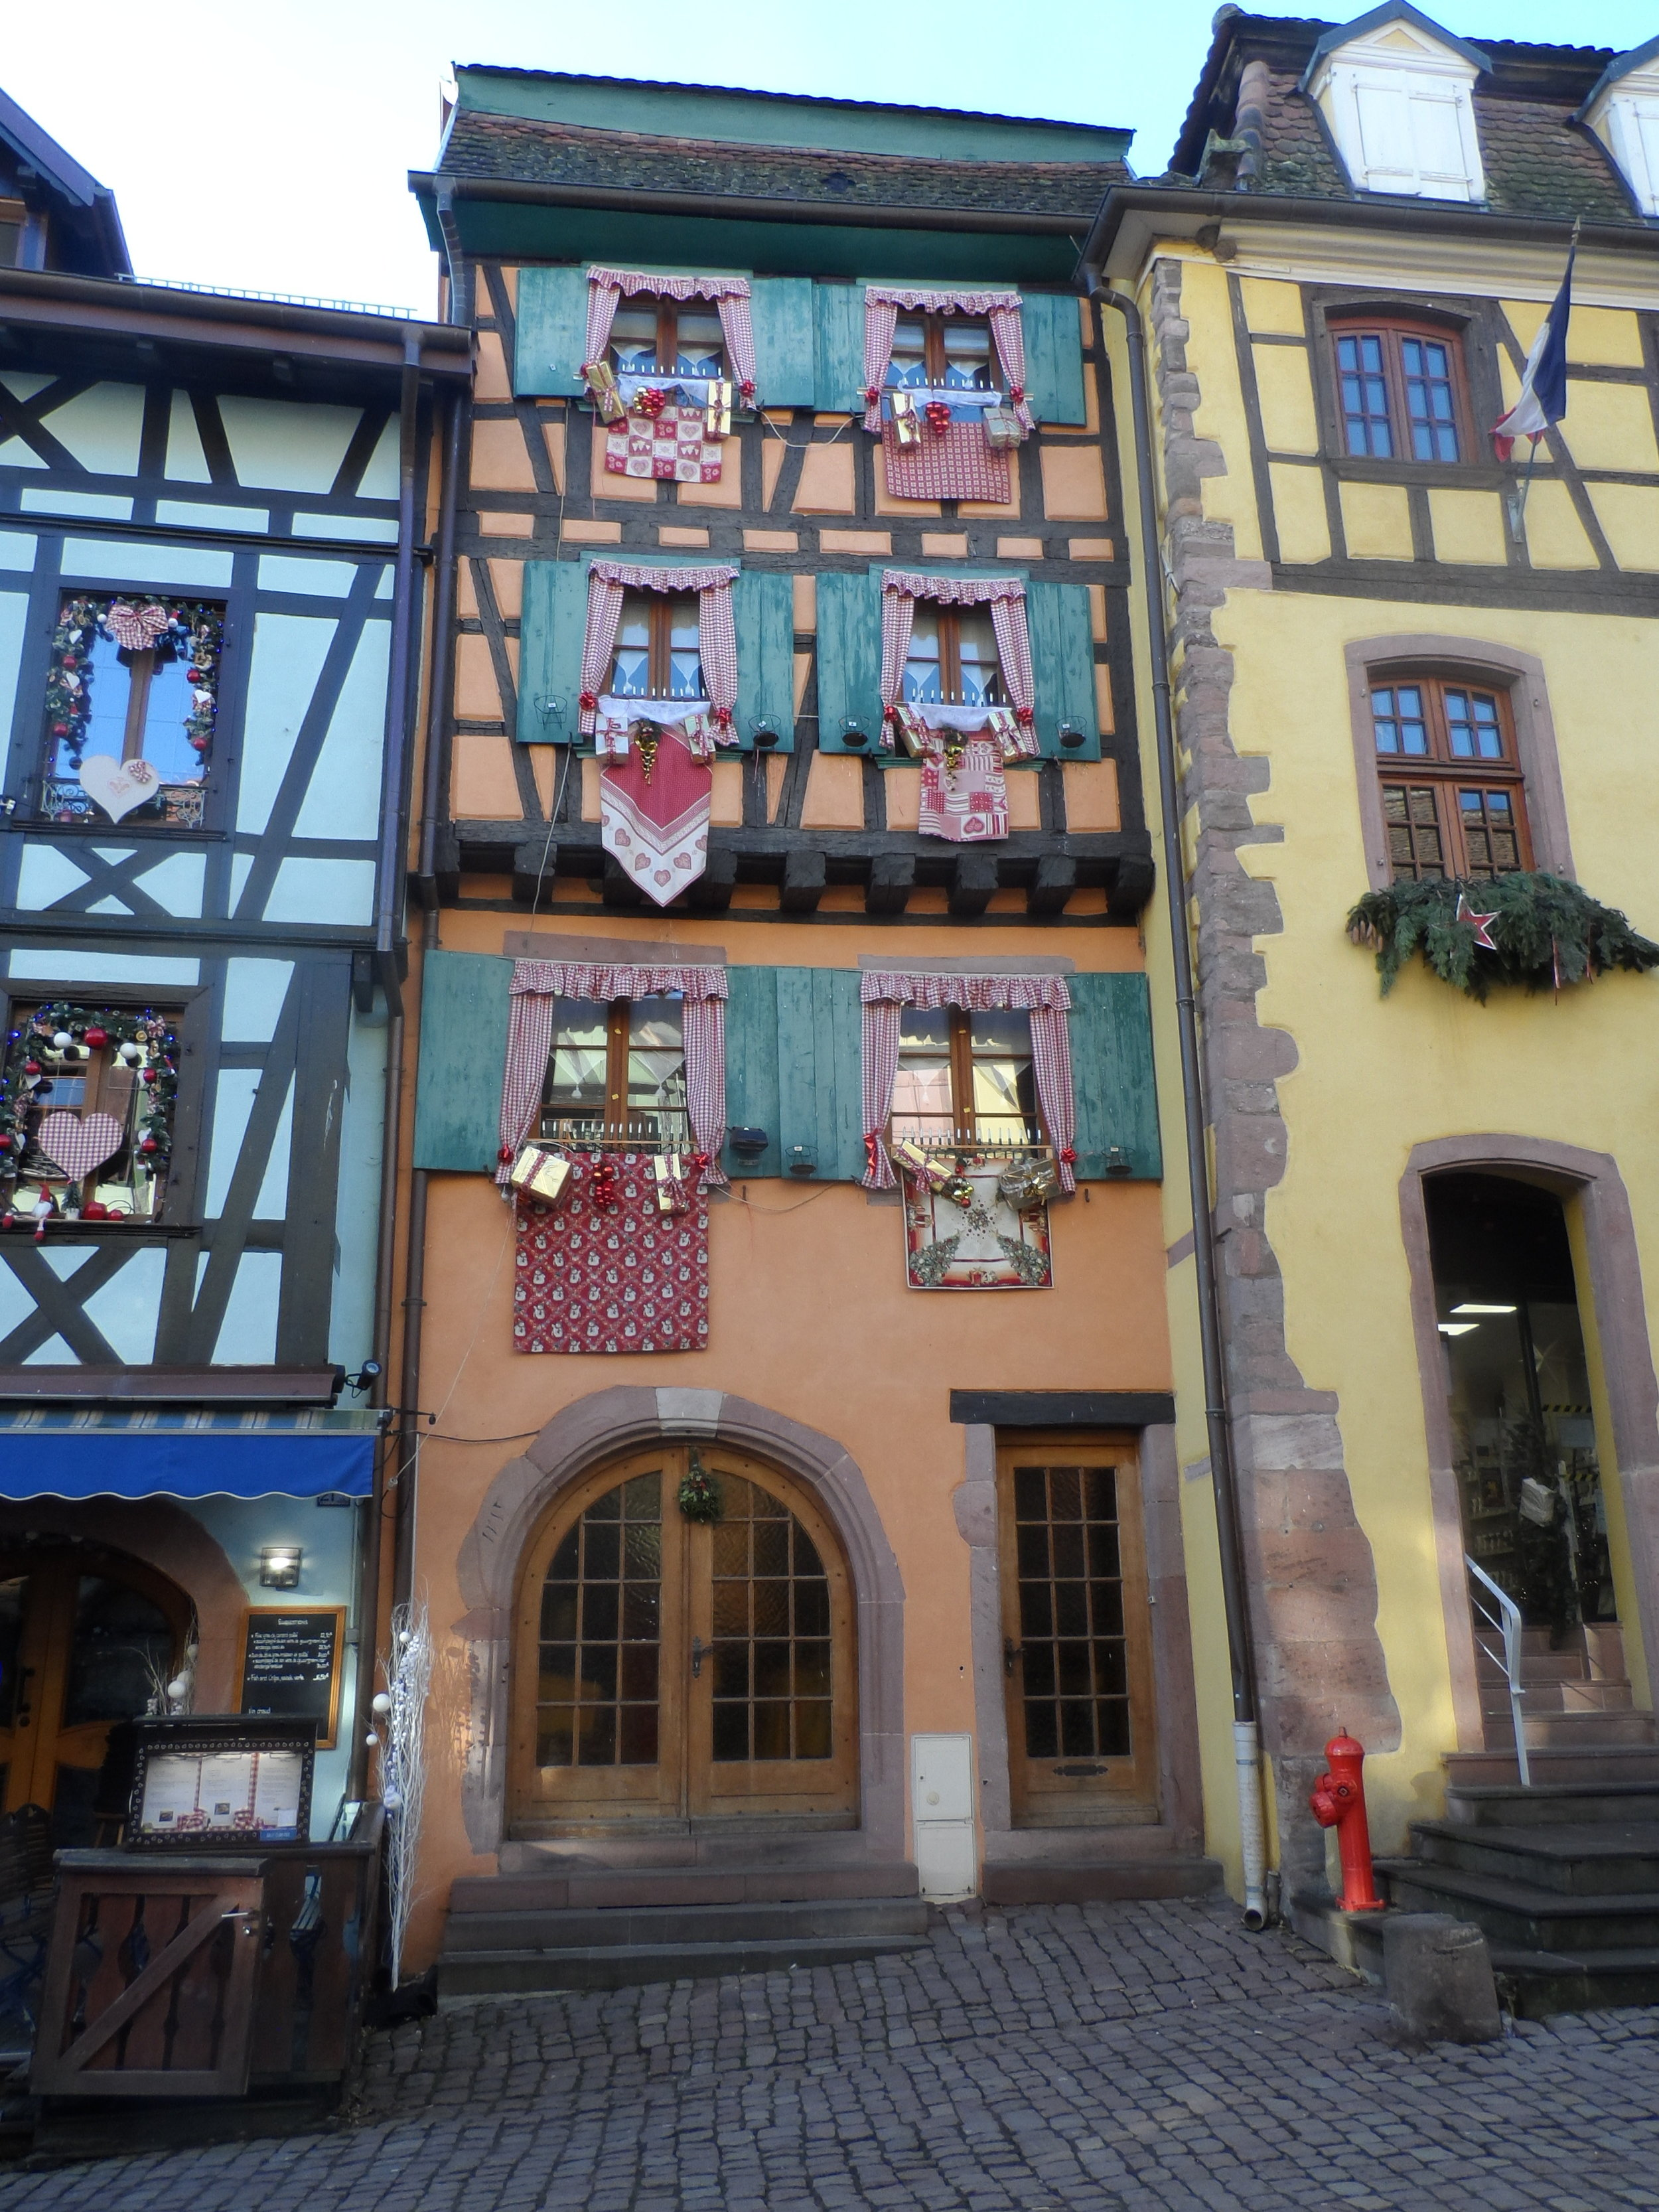 Windows all dressed up for Christmas in Riquewihr, France